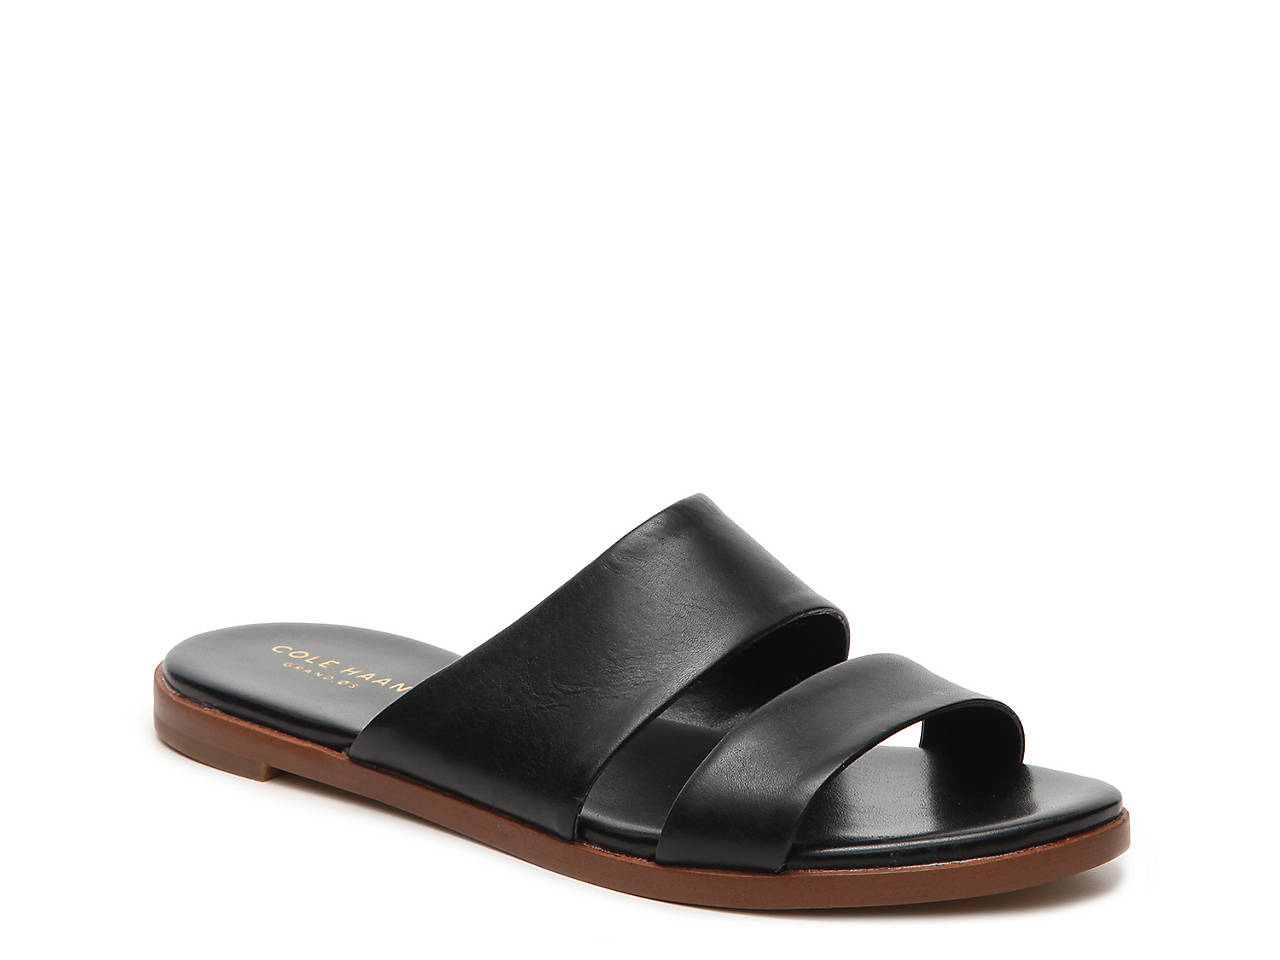 31741903adf3 Cole Haan Anica Flat Sandal Women s Shoes